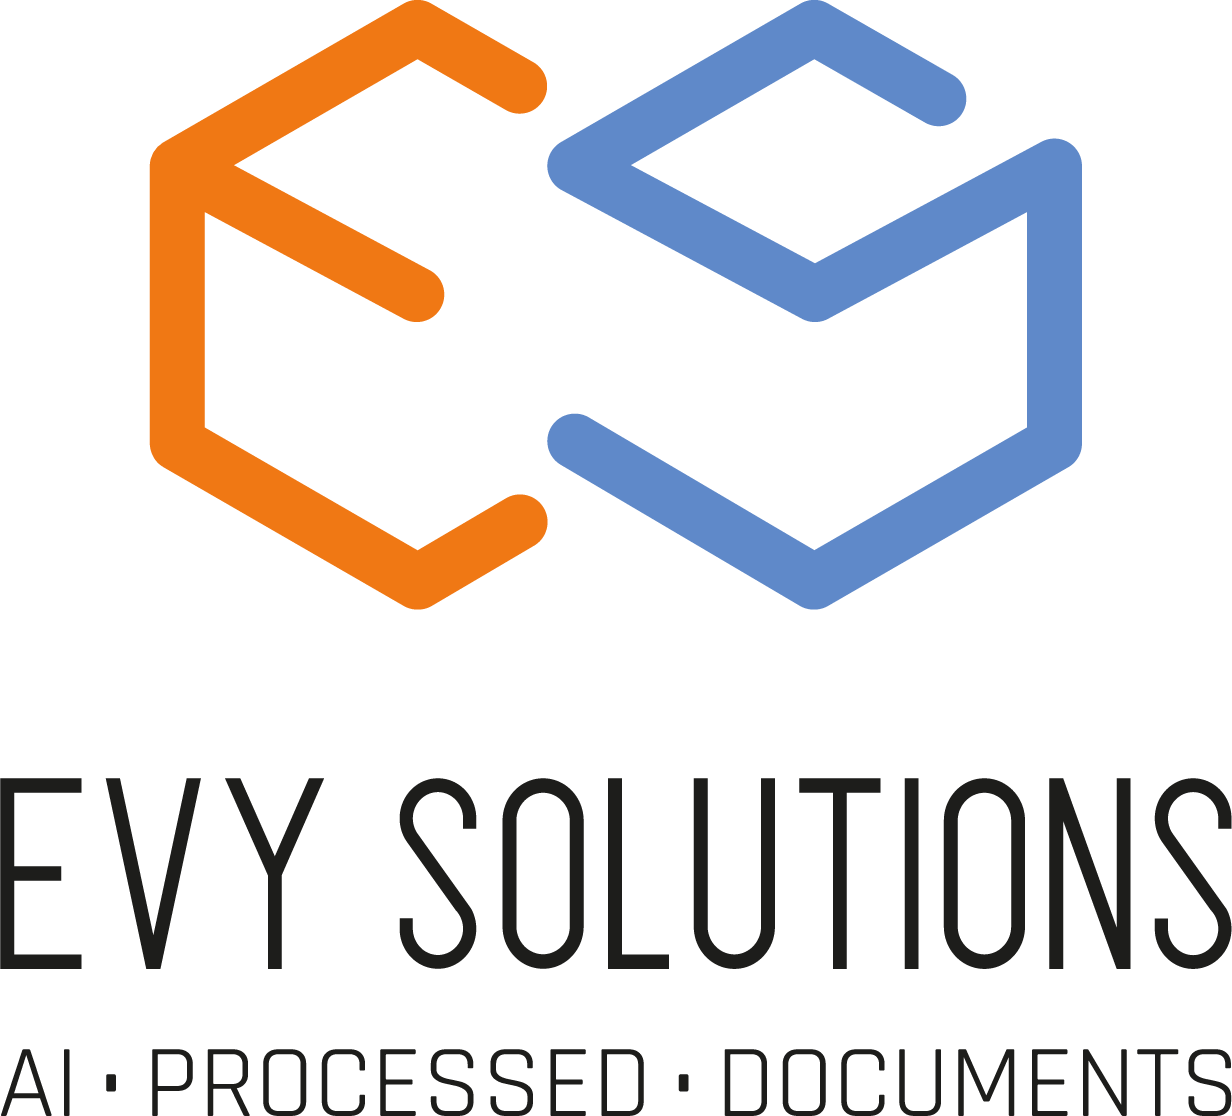 Evy Solutions